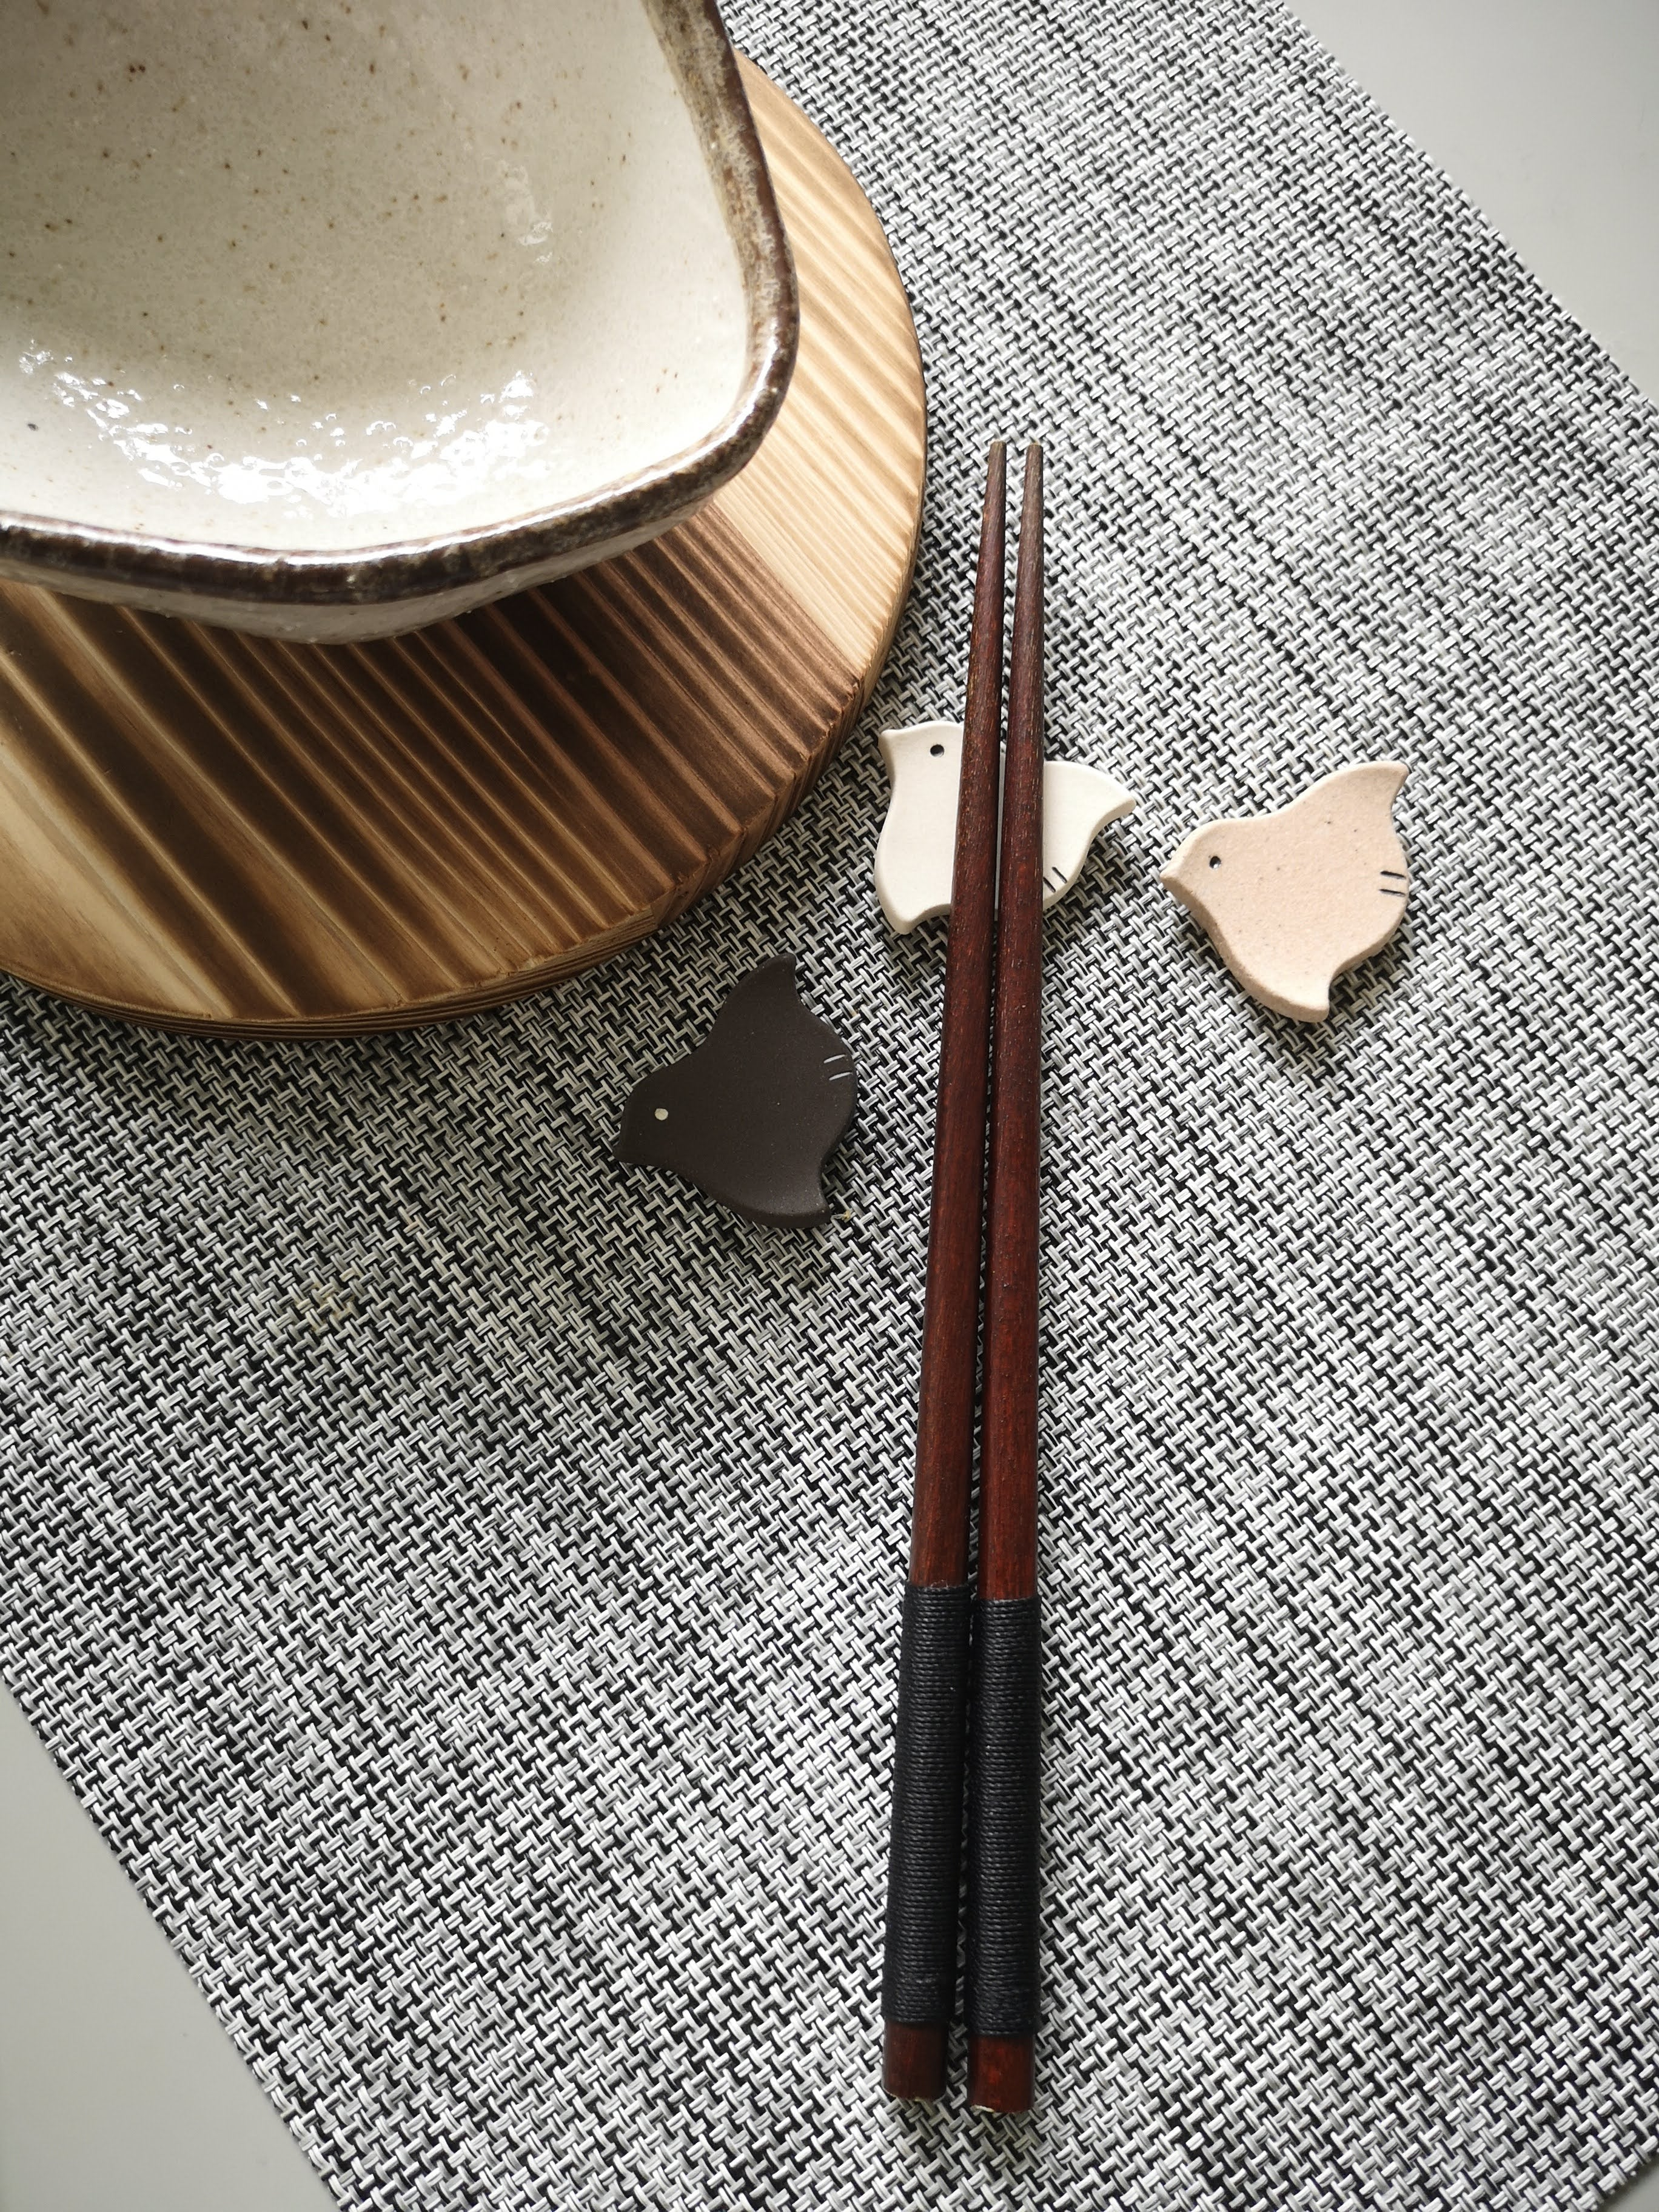 Tsubame Chopstick Holder (Set of 3)